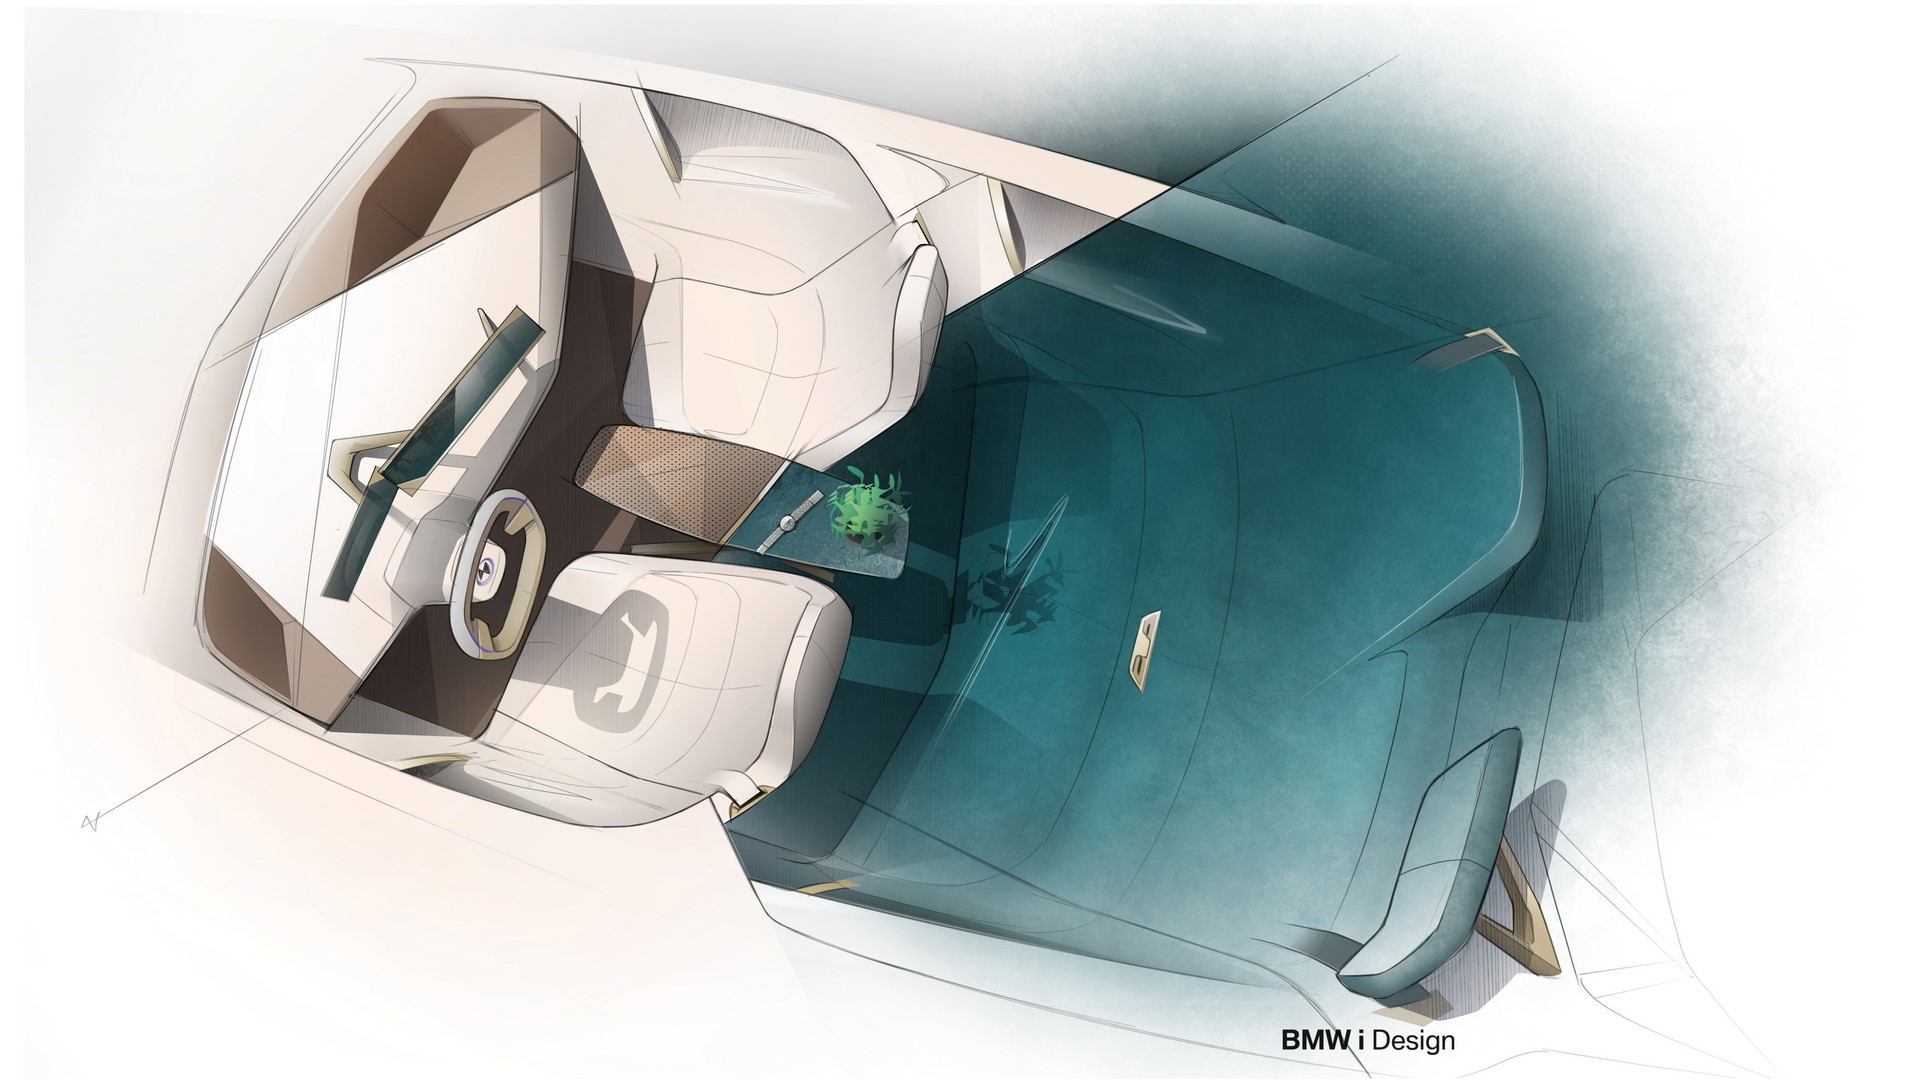 BMW Vision iNext Concept (98)